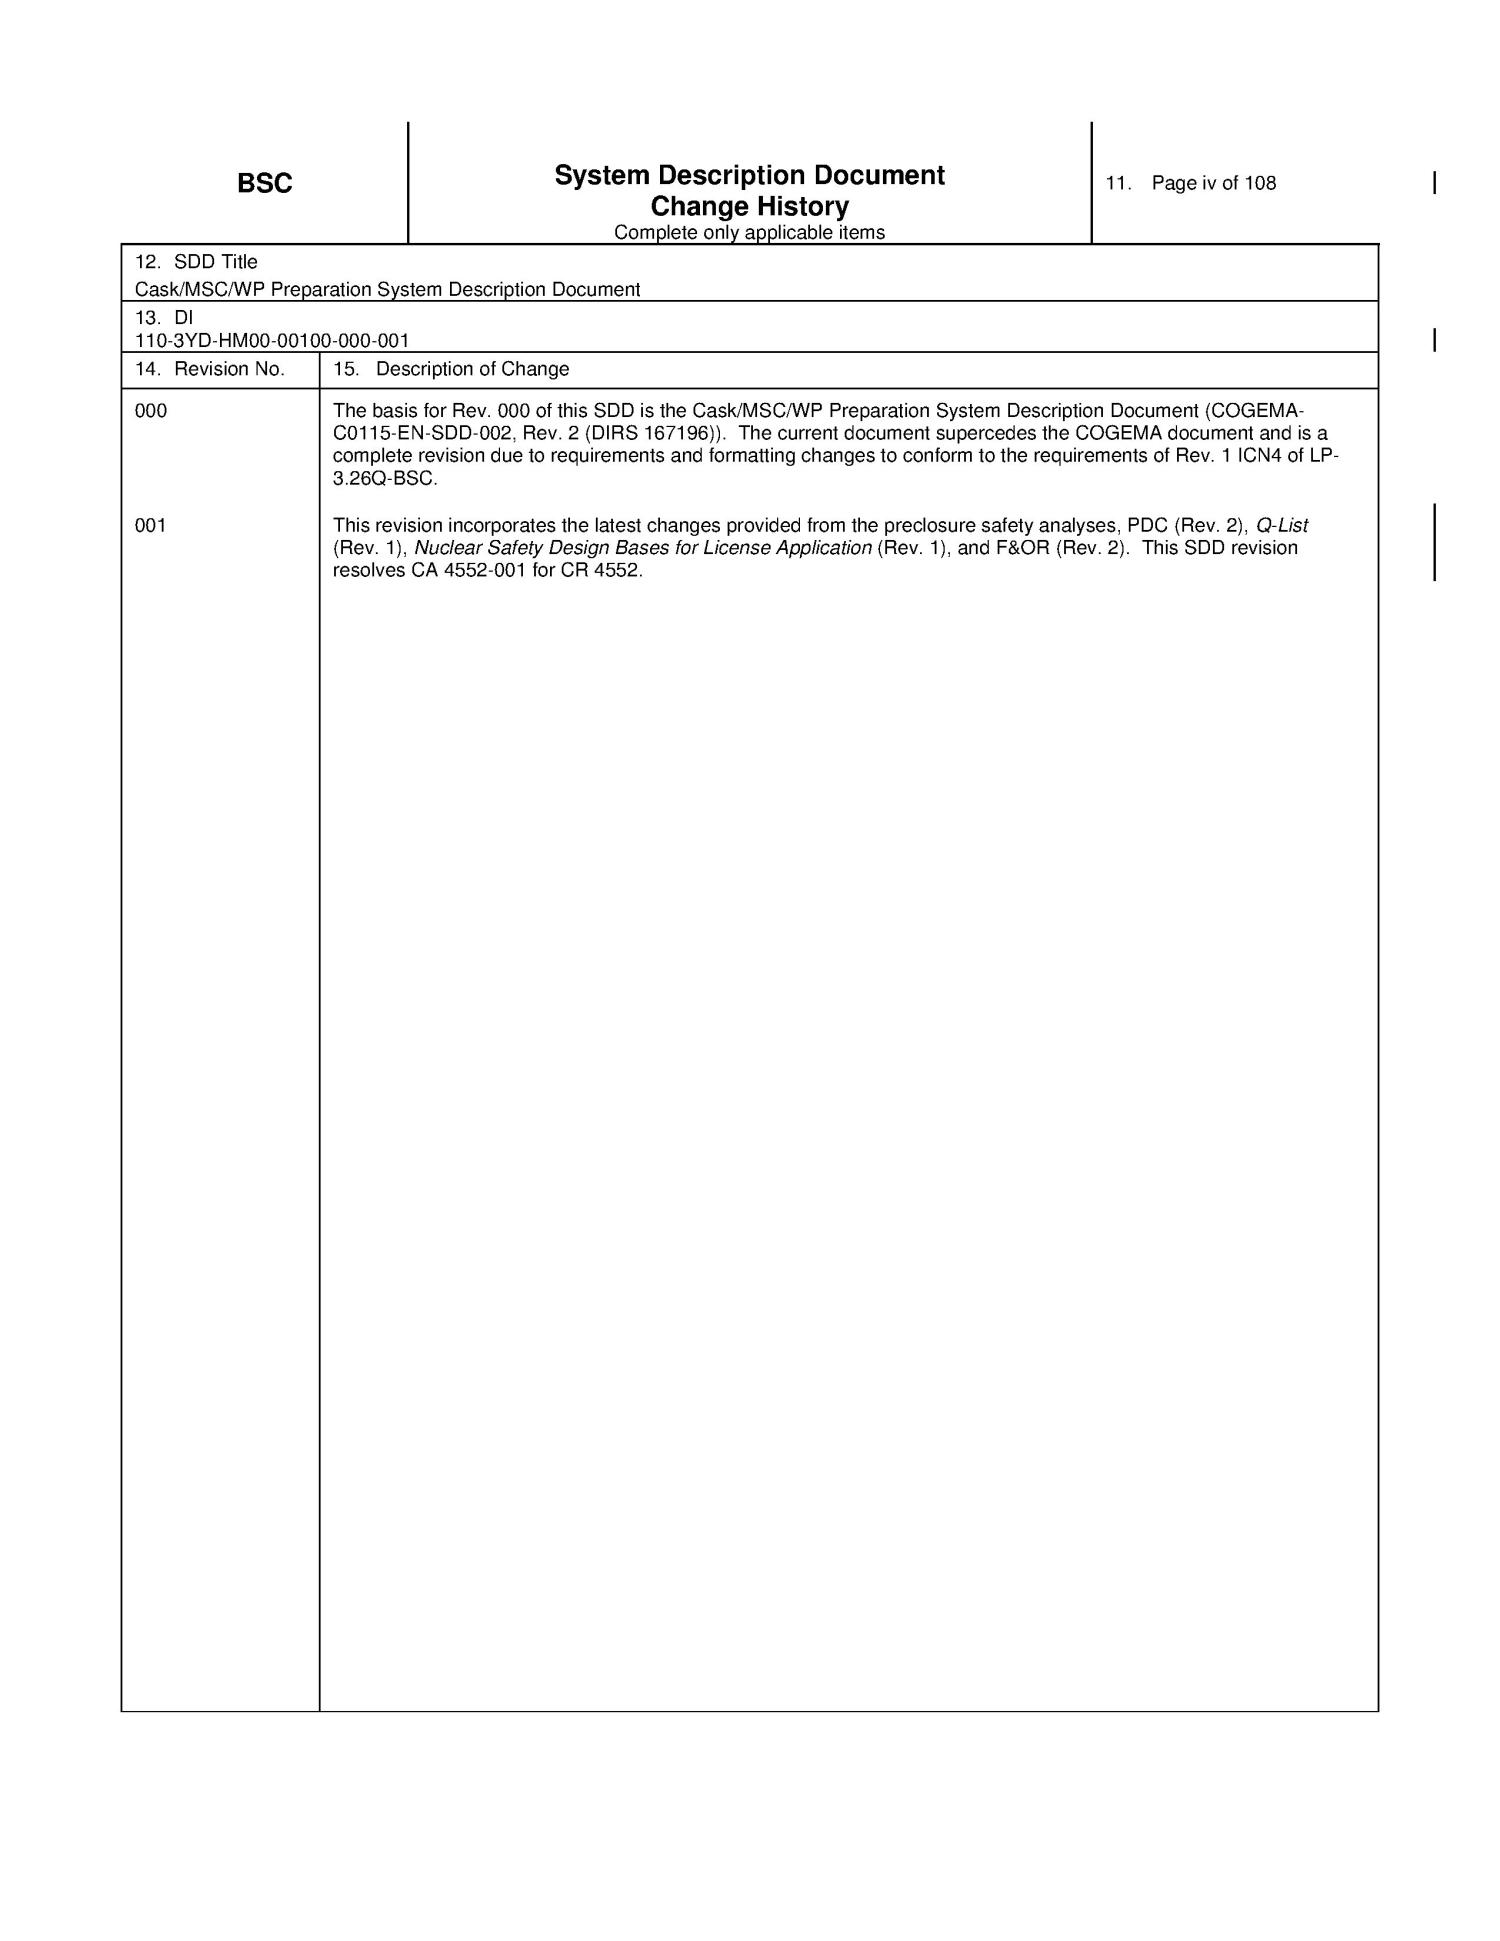 CASK/MSC/WP PREPARATION SYSTEM DESCRIPTION DOCUMENT                                                                                                      [Sequence #]: 4 of 108